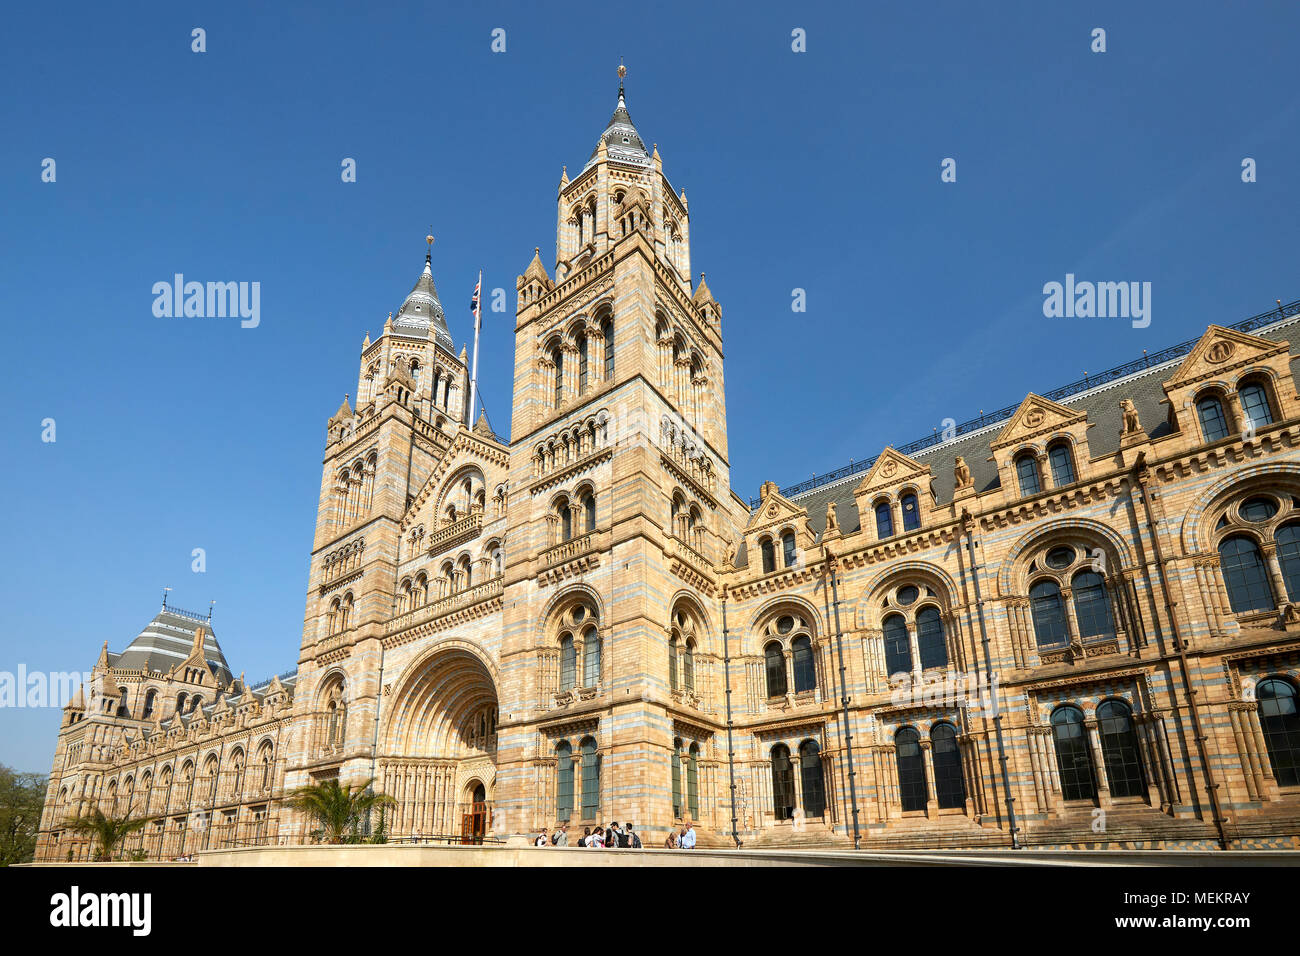 The Natural History Museum Cromwell Road London England UK - Stock Image